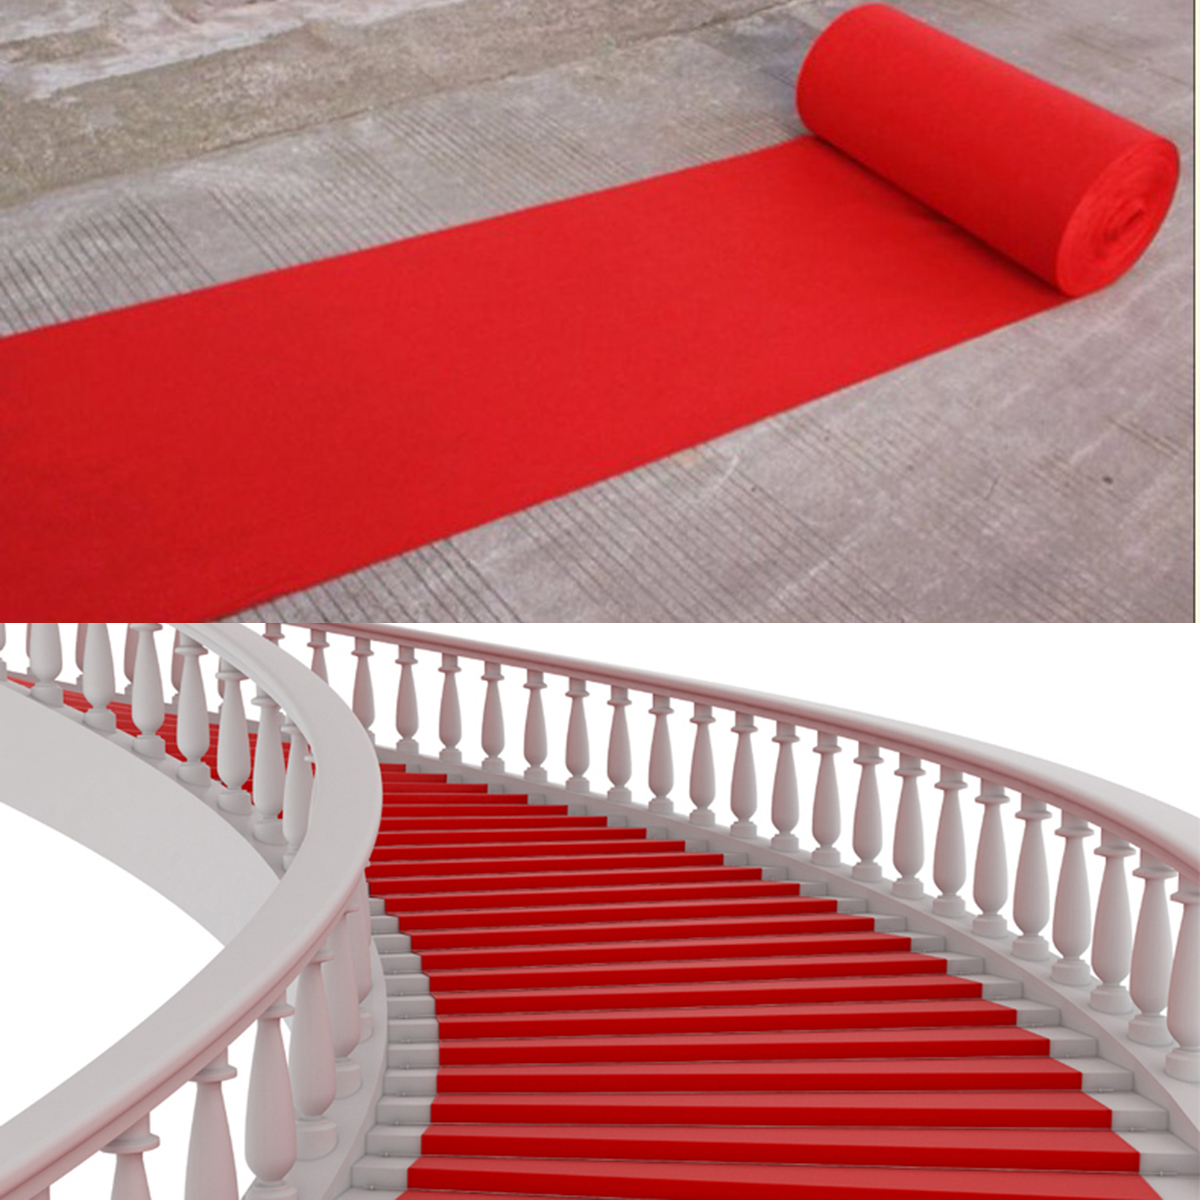 40ft Celebrity Floor Runner Red Carpet Party Wedding Disposable Scene Decoration